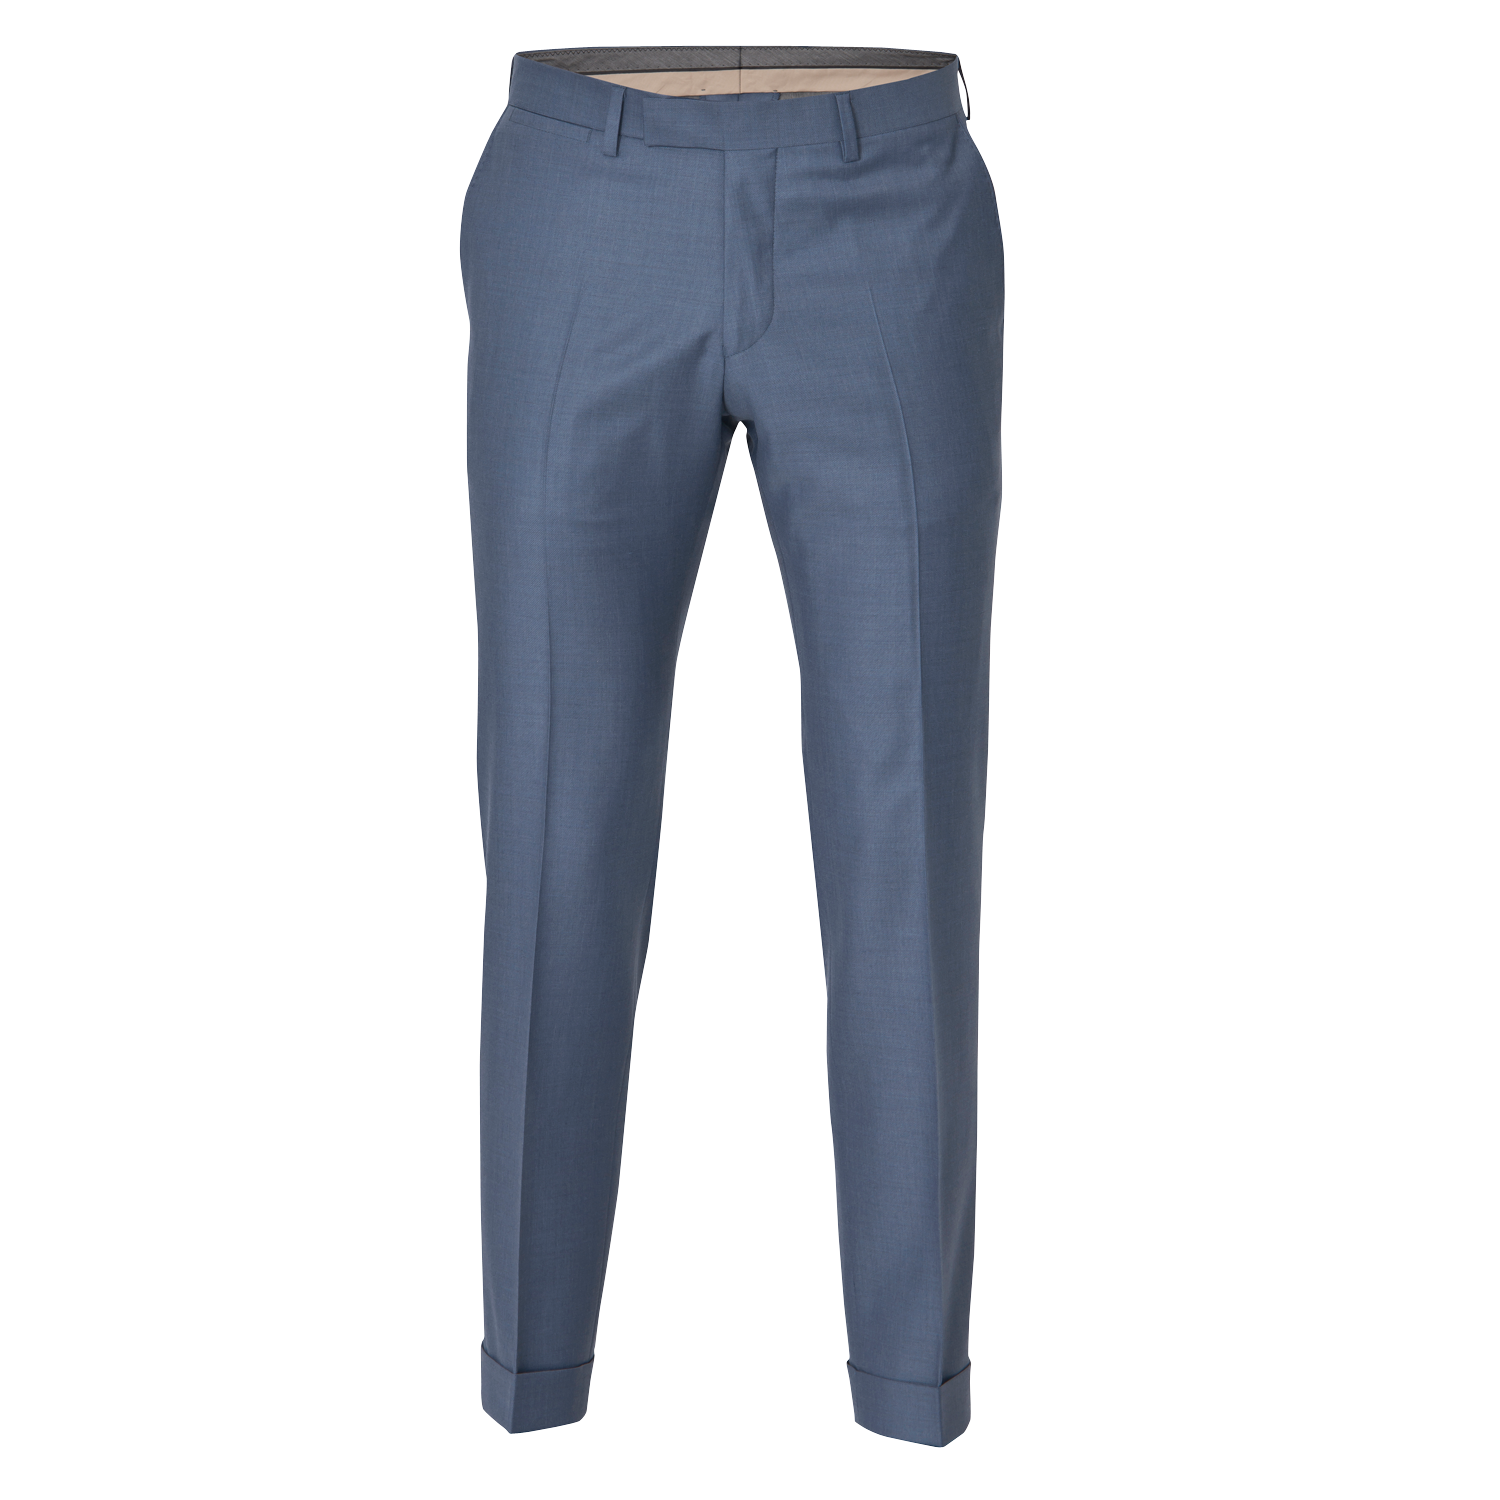 Trousers PNG HD